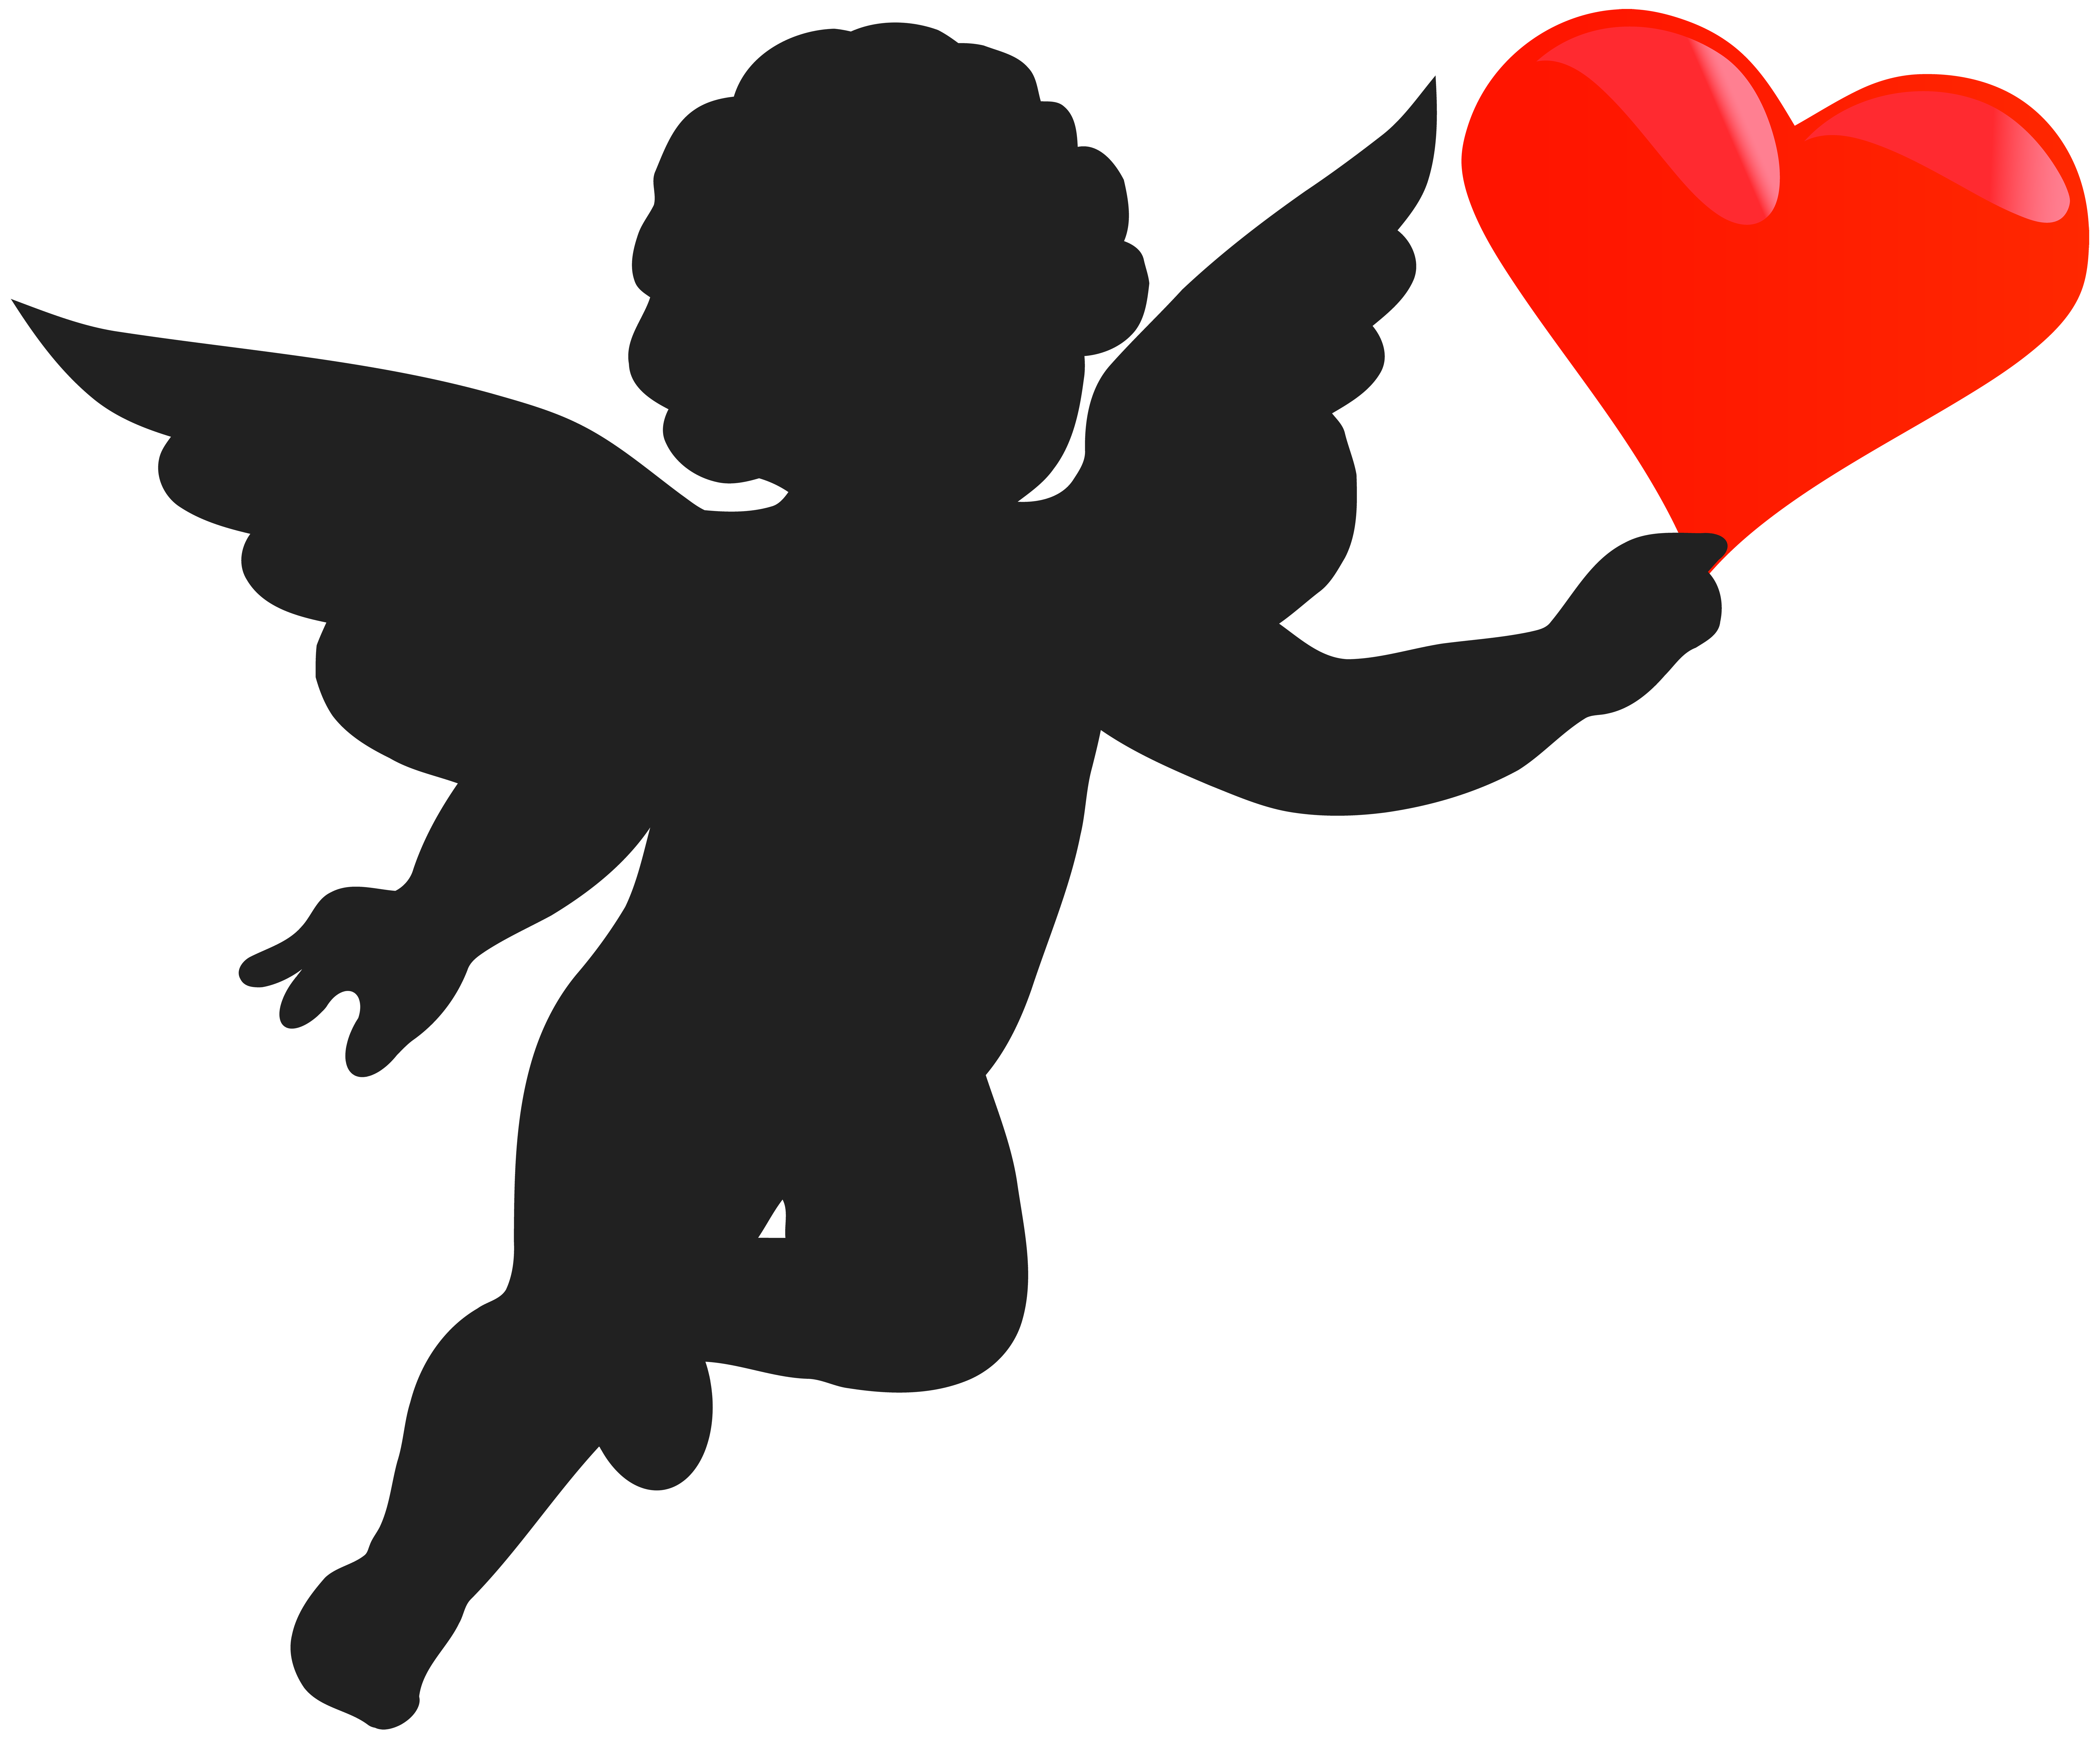 With heart silhouette png. Cupid clipart